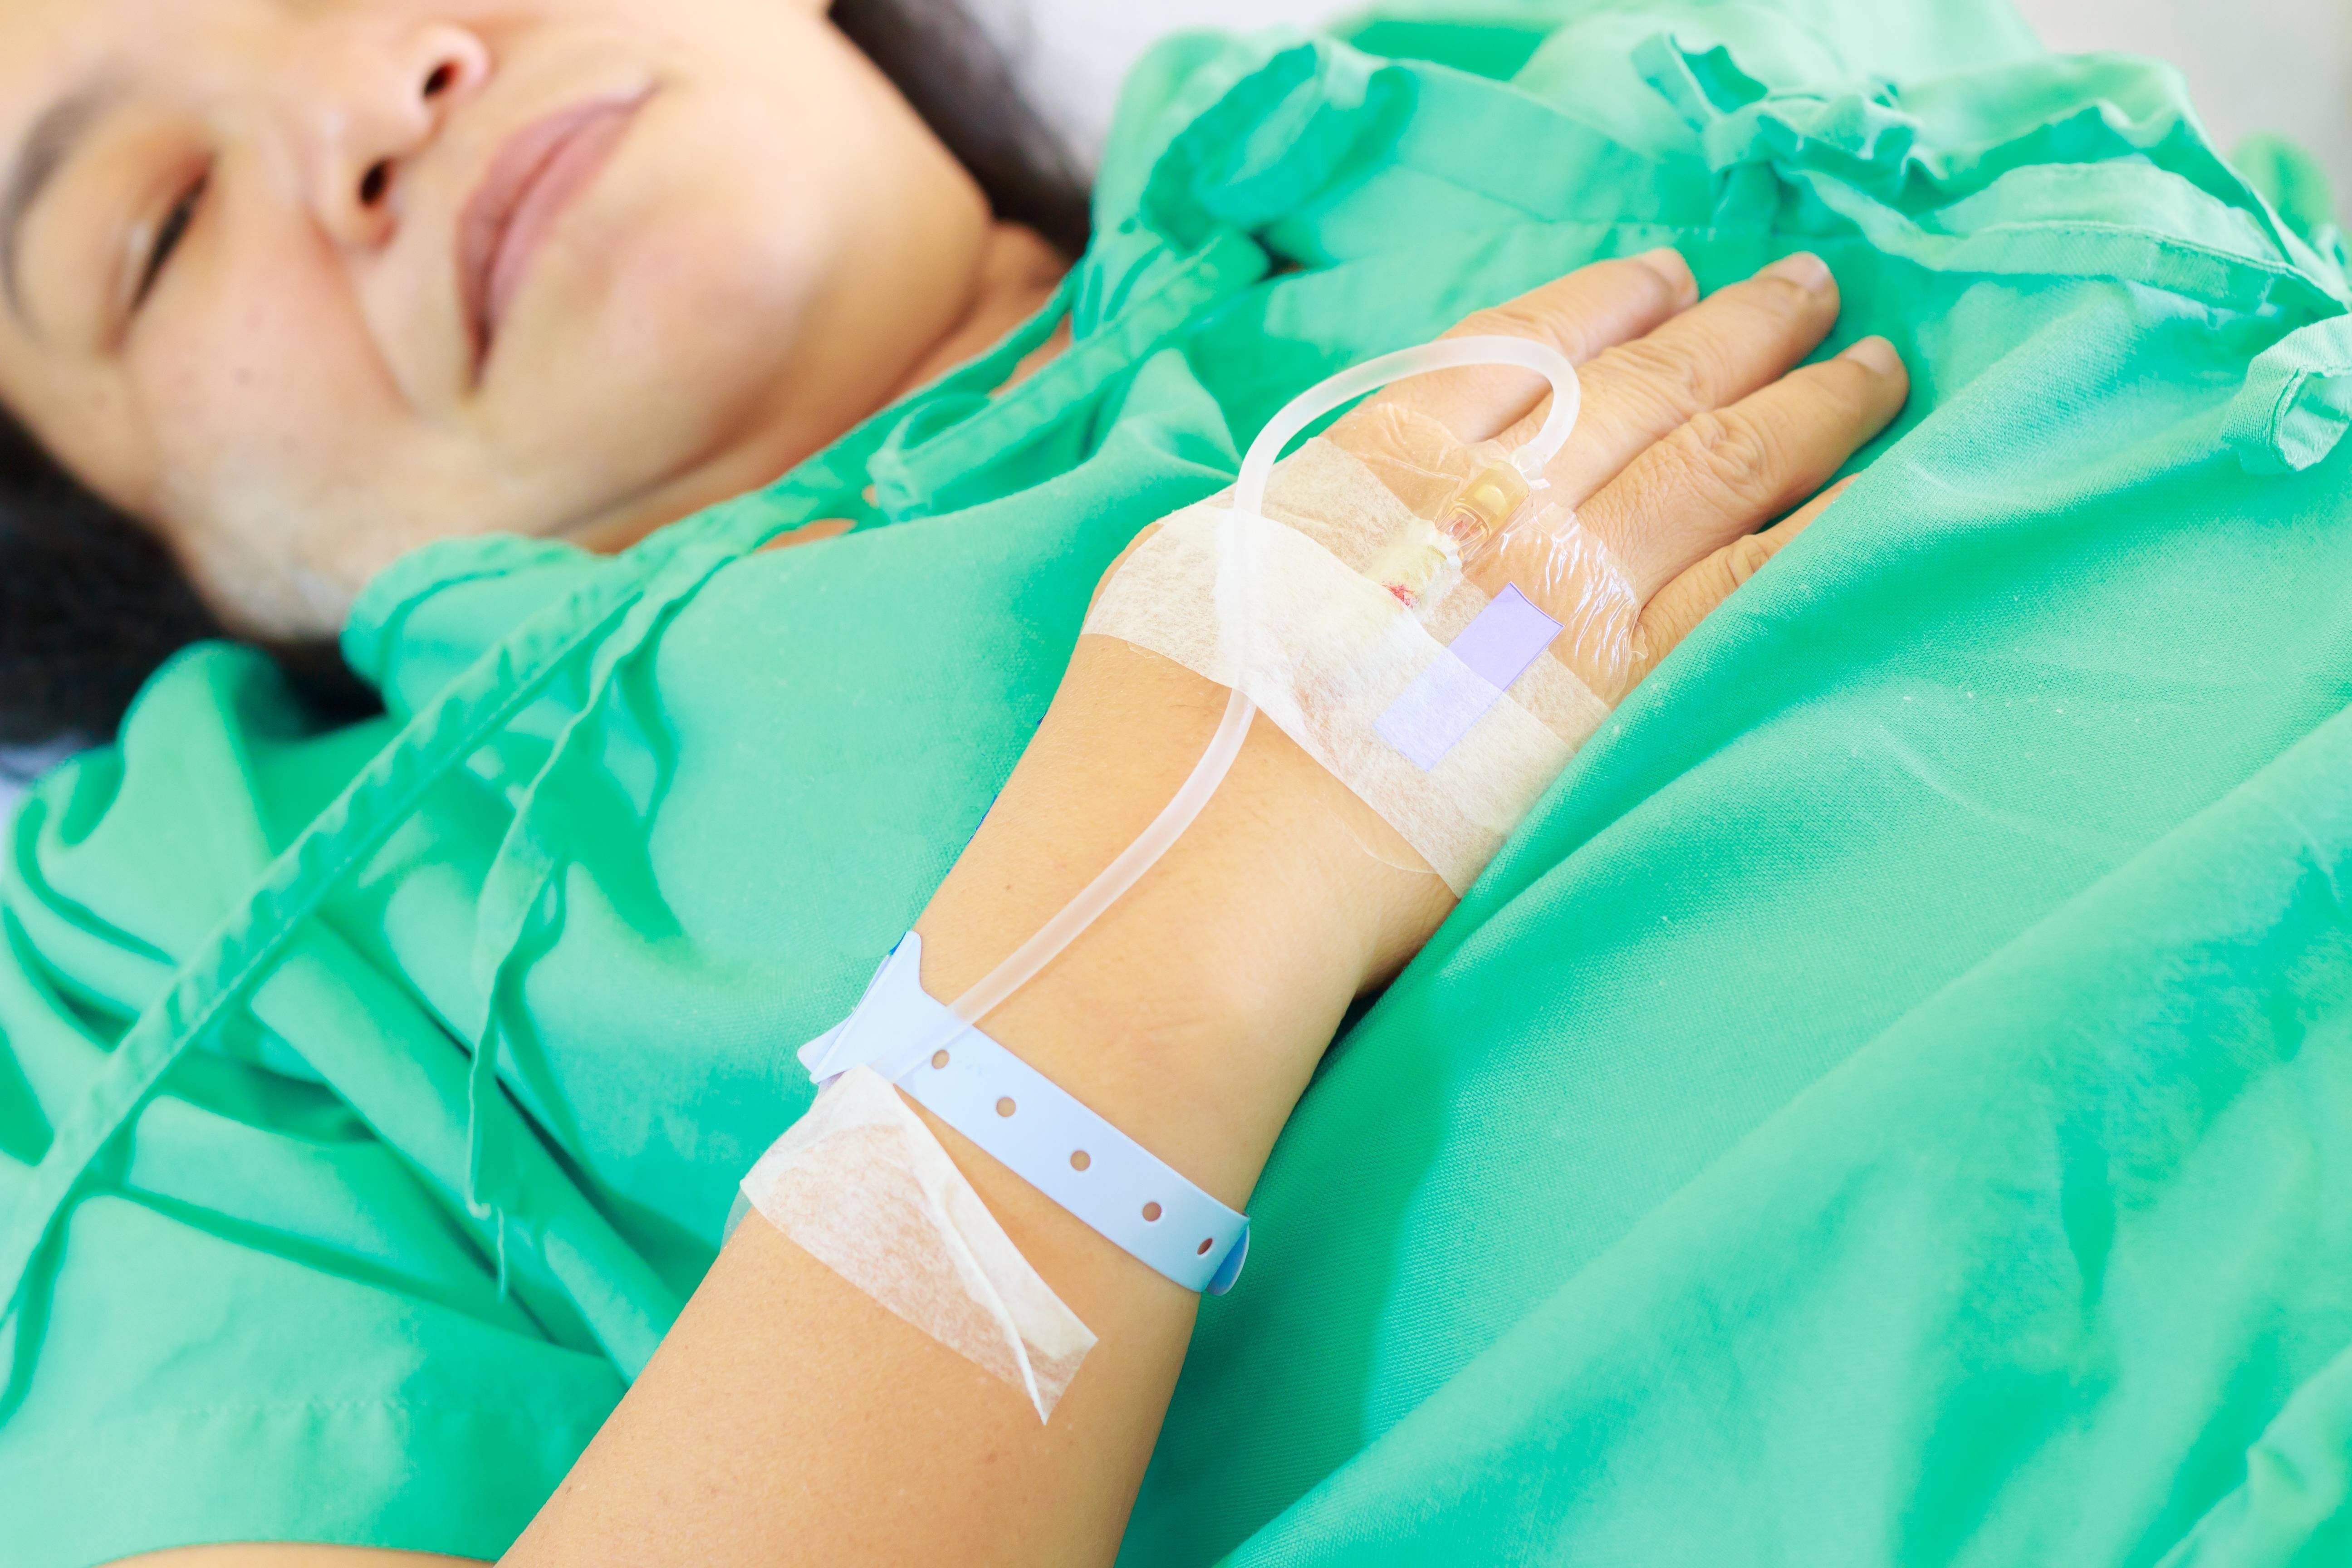 Sick woman with secondary health insurance in hospital gown with I.V.